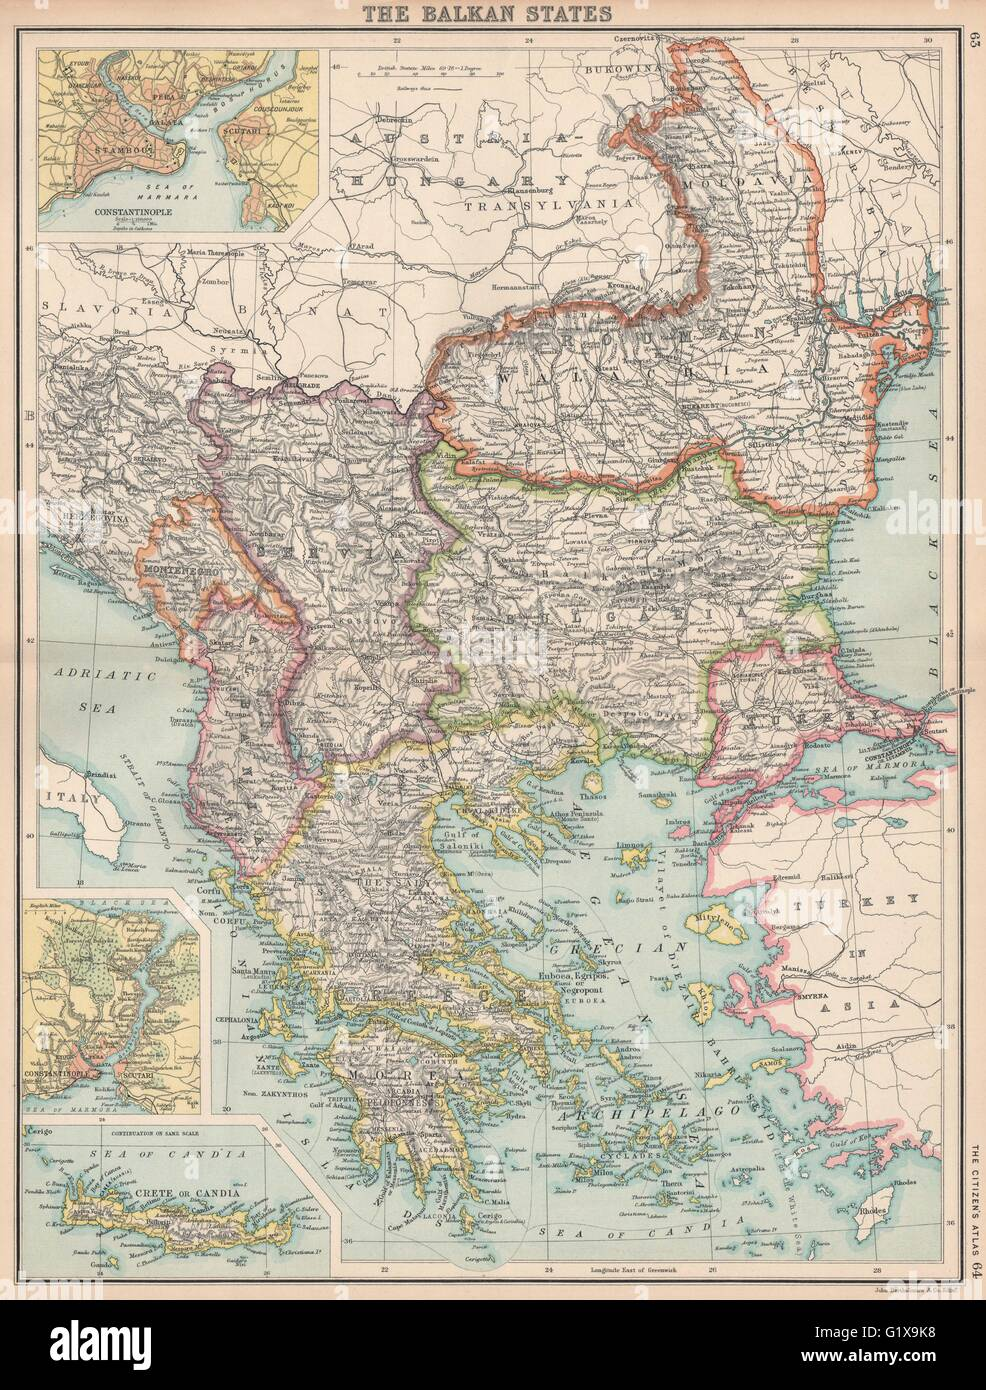 BALKANS. Turkey In Europe Greece Wallachia. Constantinople (Istanbul ...